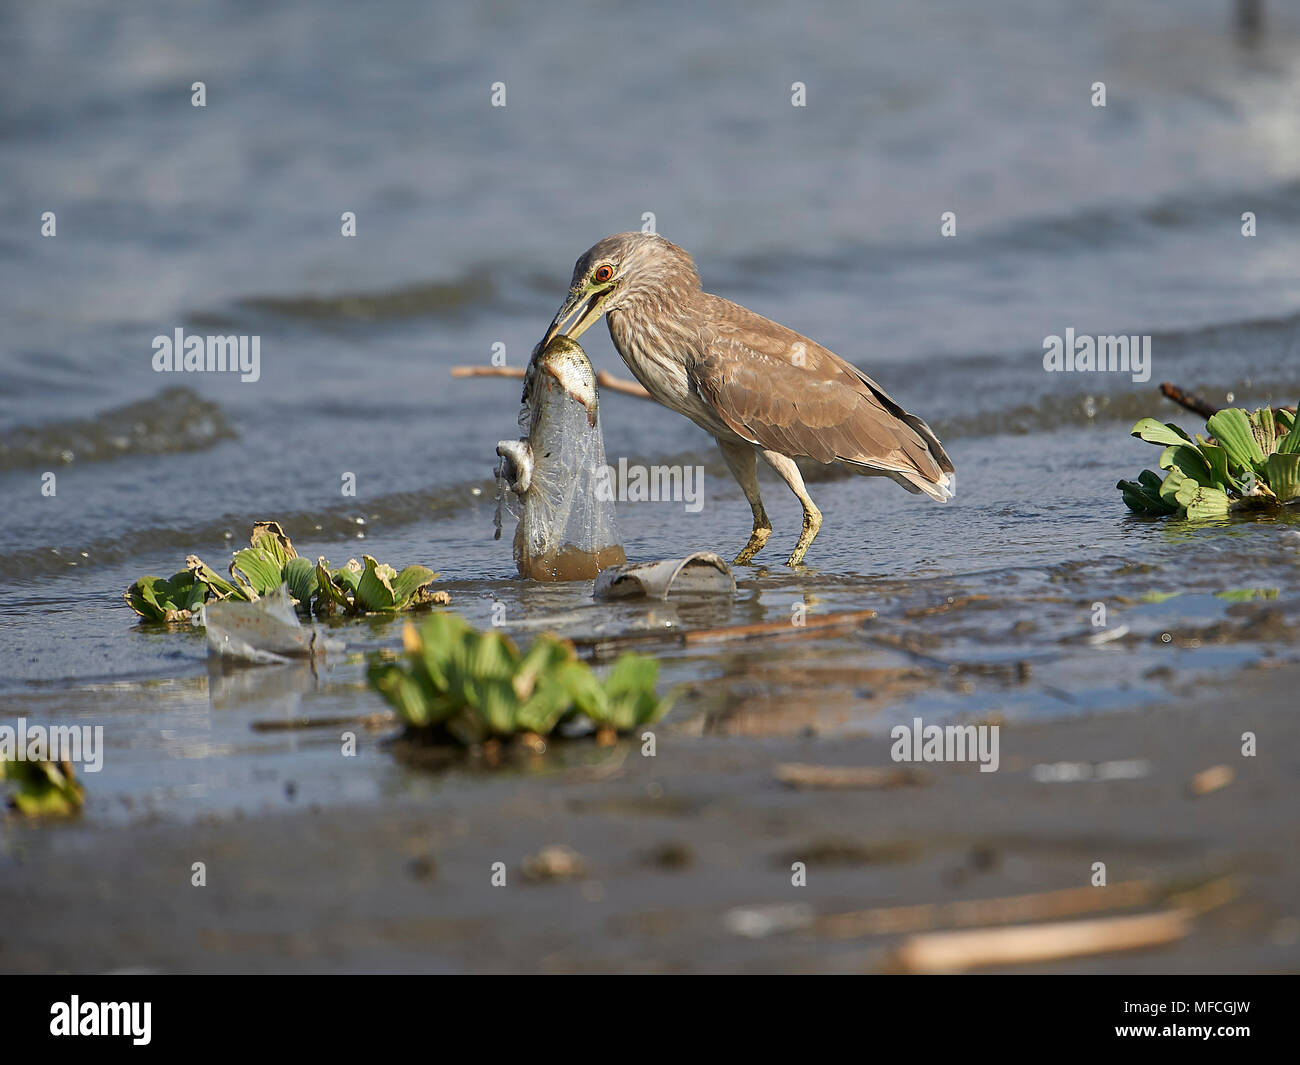 Immature Black-crowned Night Heron (Nycticorax nycticorax) attempts to swallow a plastic bag containing discarded fish - Stock Image